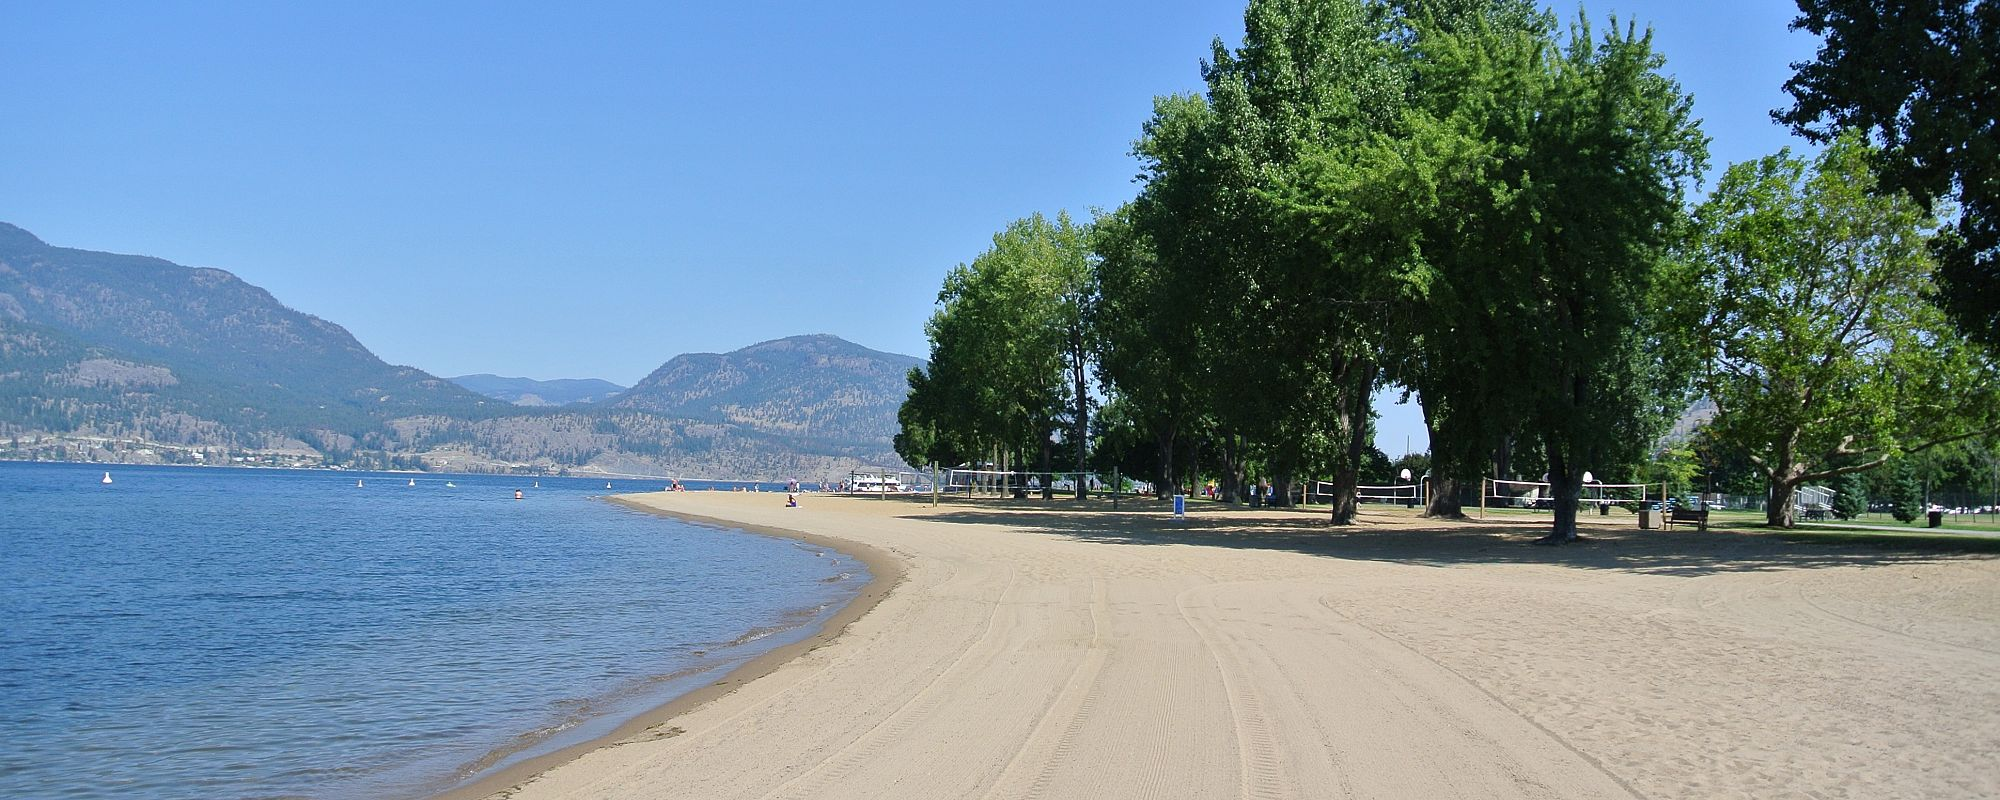 Things I wish I knew before vacationing in Kelowna